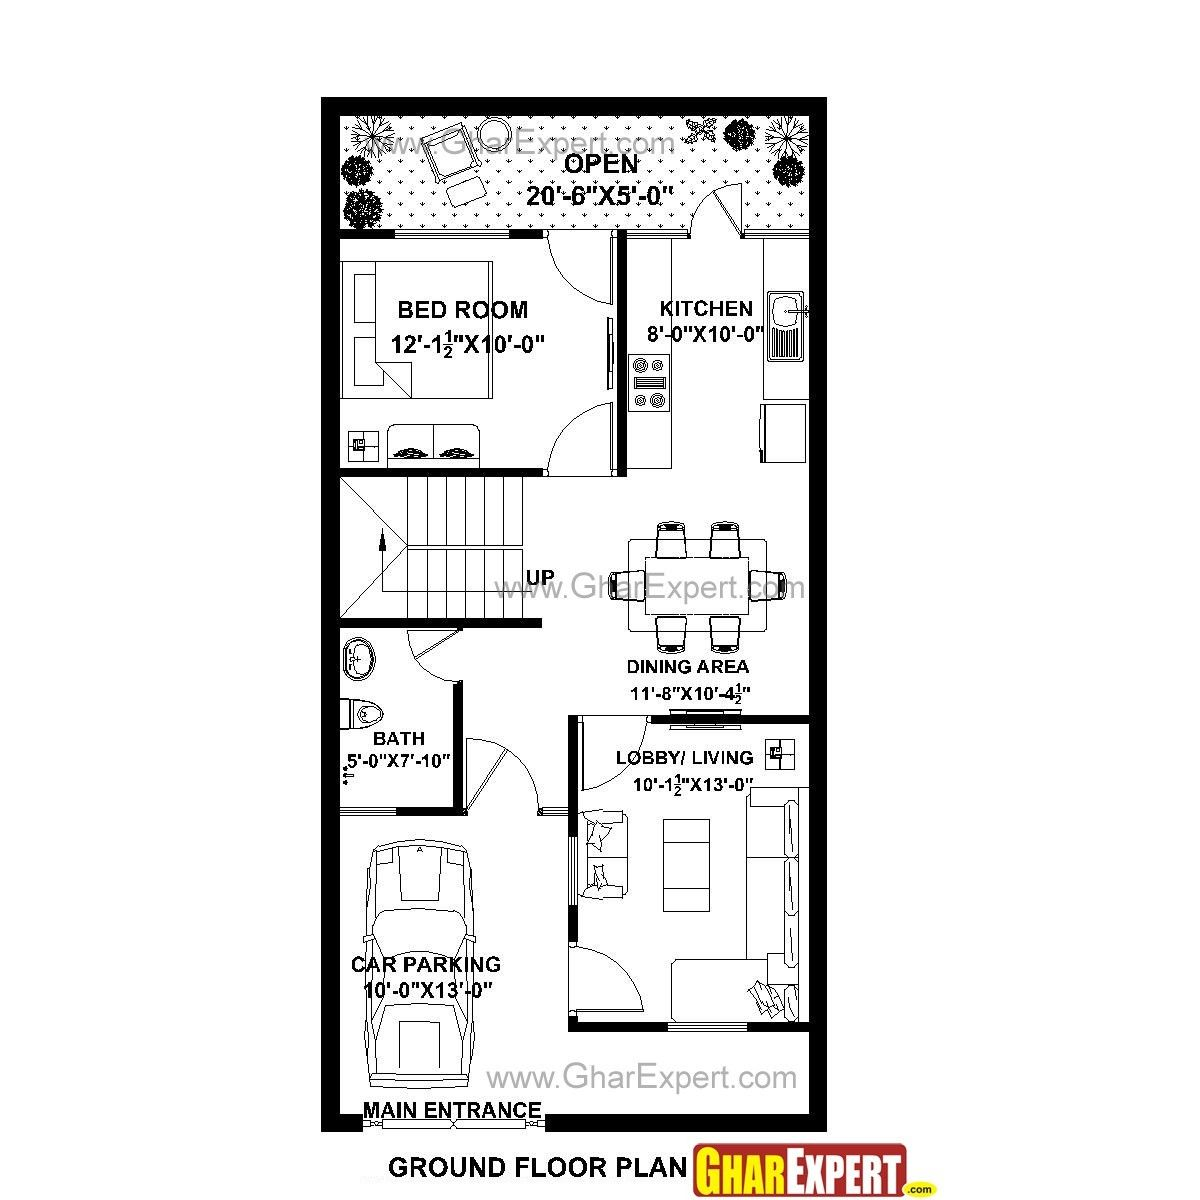 20 X 40 House Plans 800 Square Feet Luxury House Plan For 22 Feet By Luxury House Plans House Map 20x40 House Plans